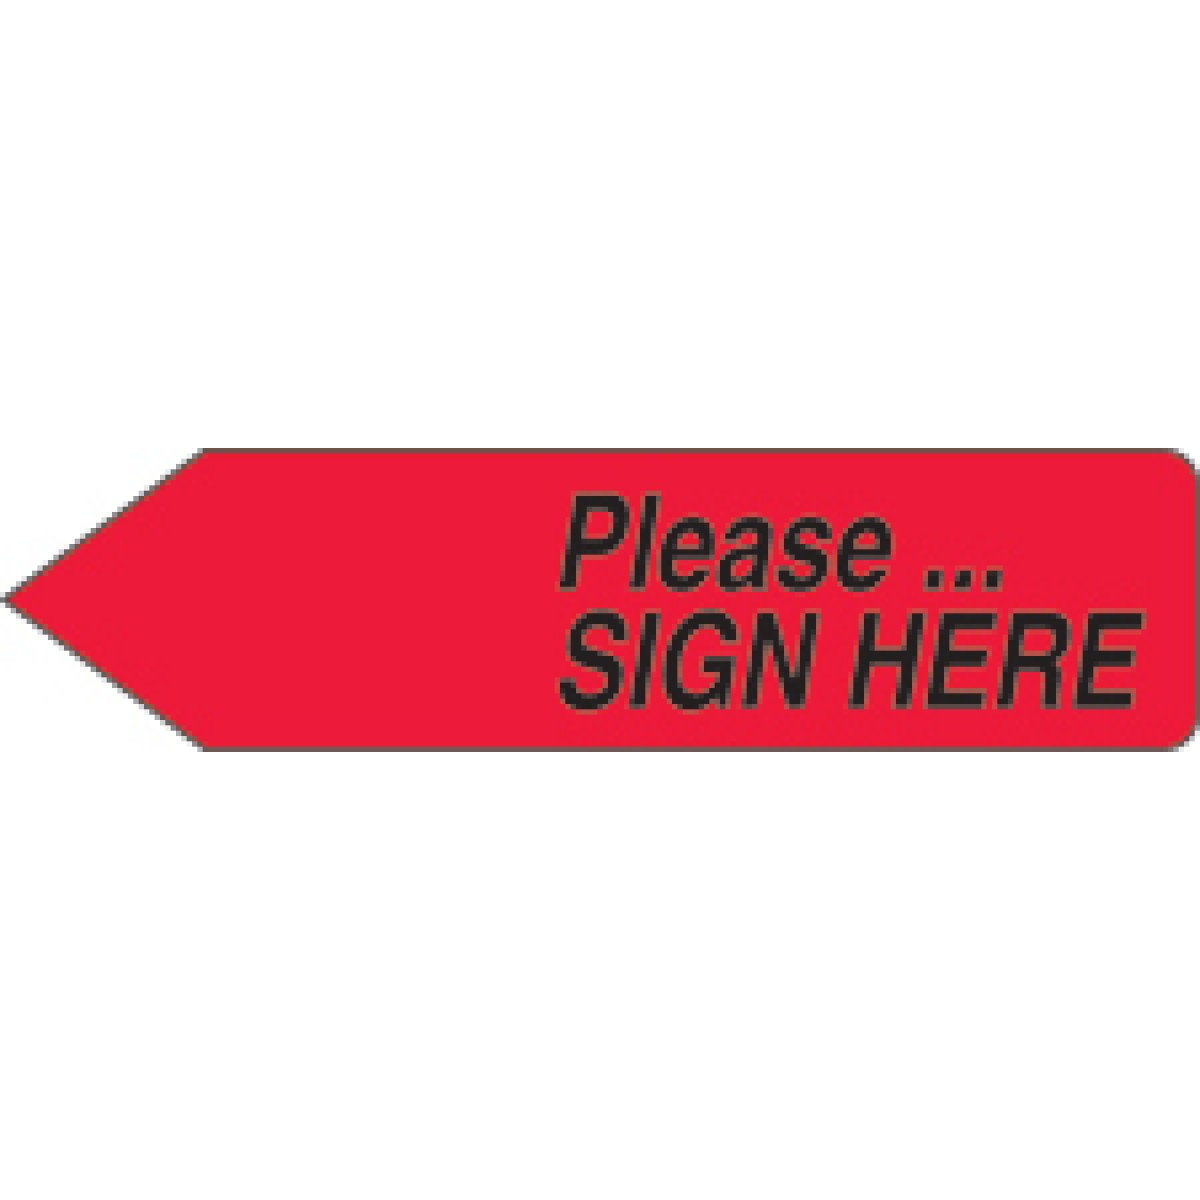 Please clipart sign here Signature Sign Here tag (59+)